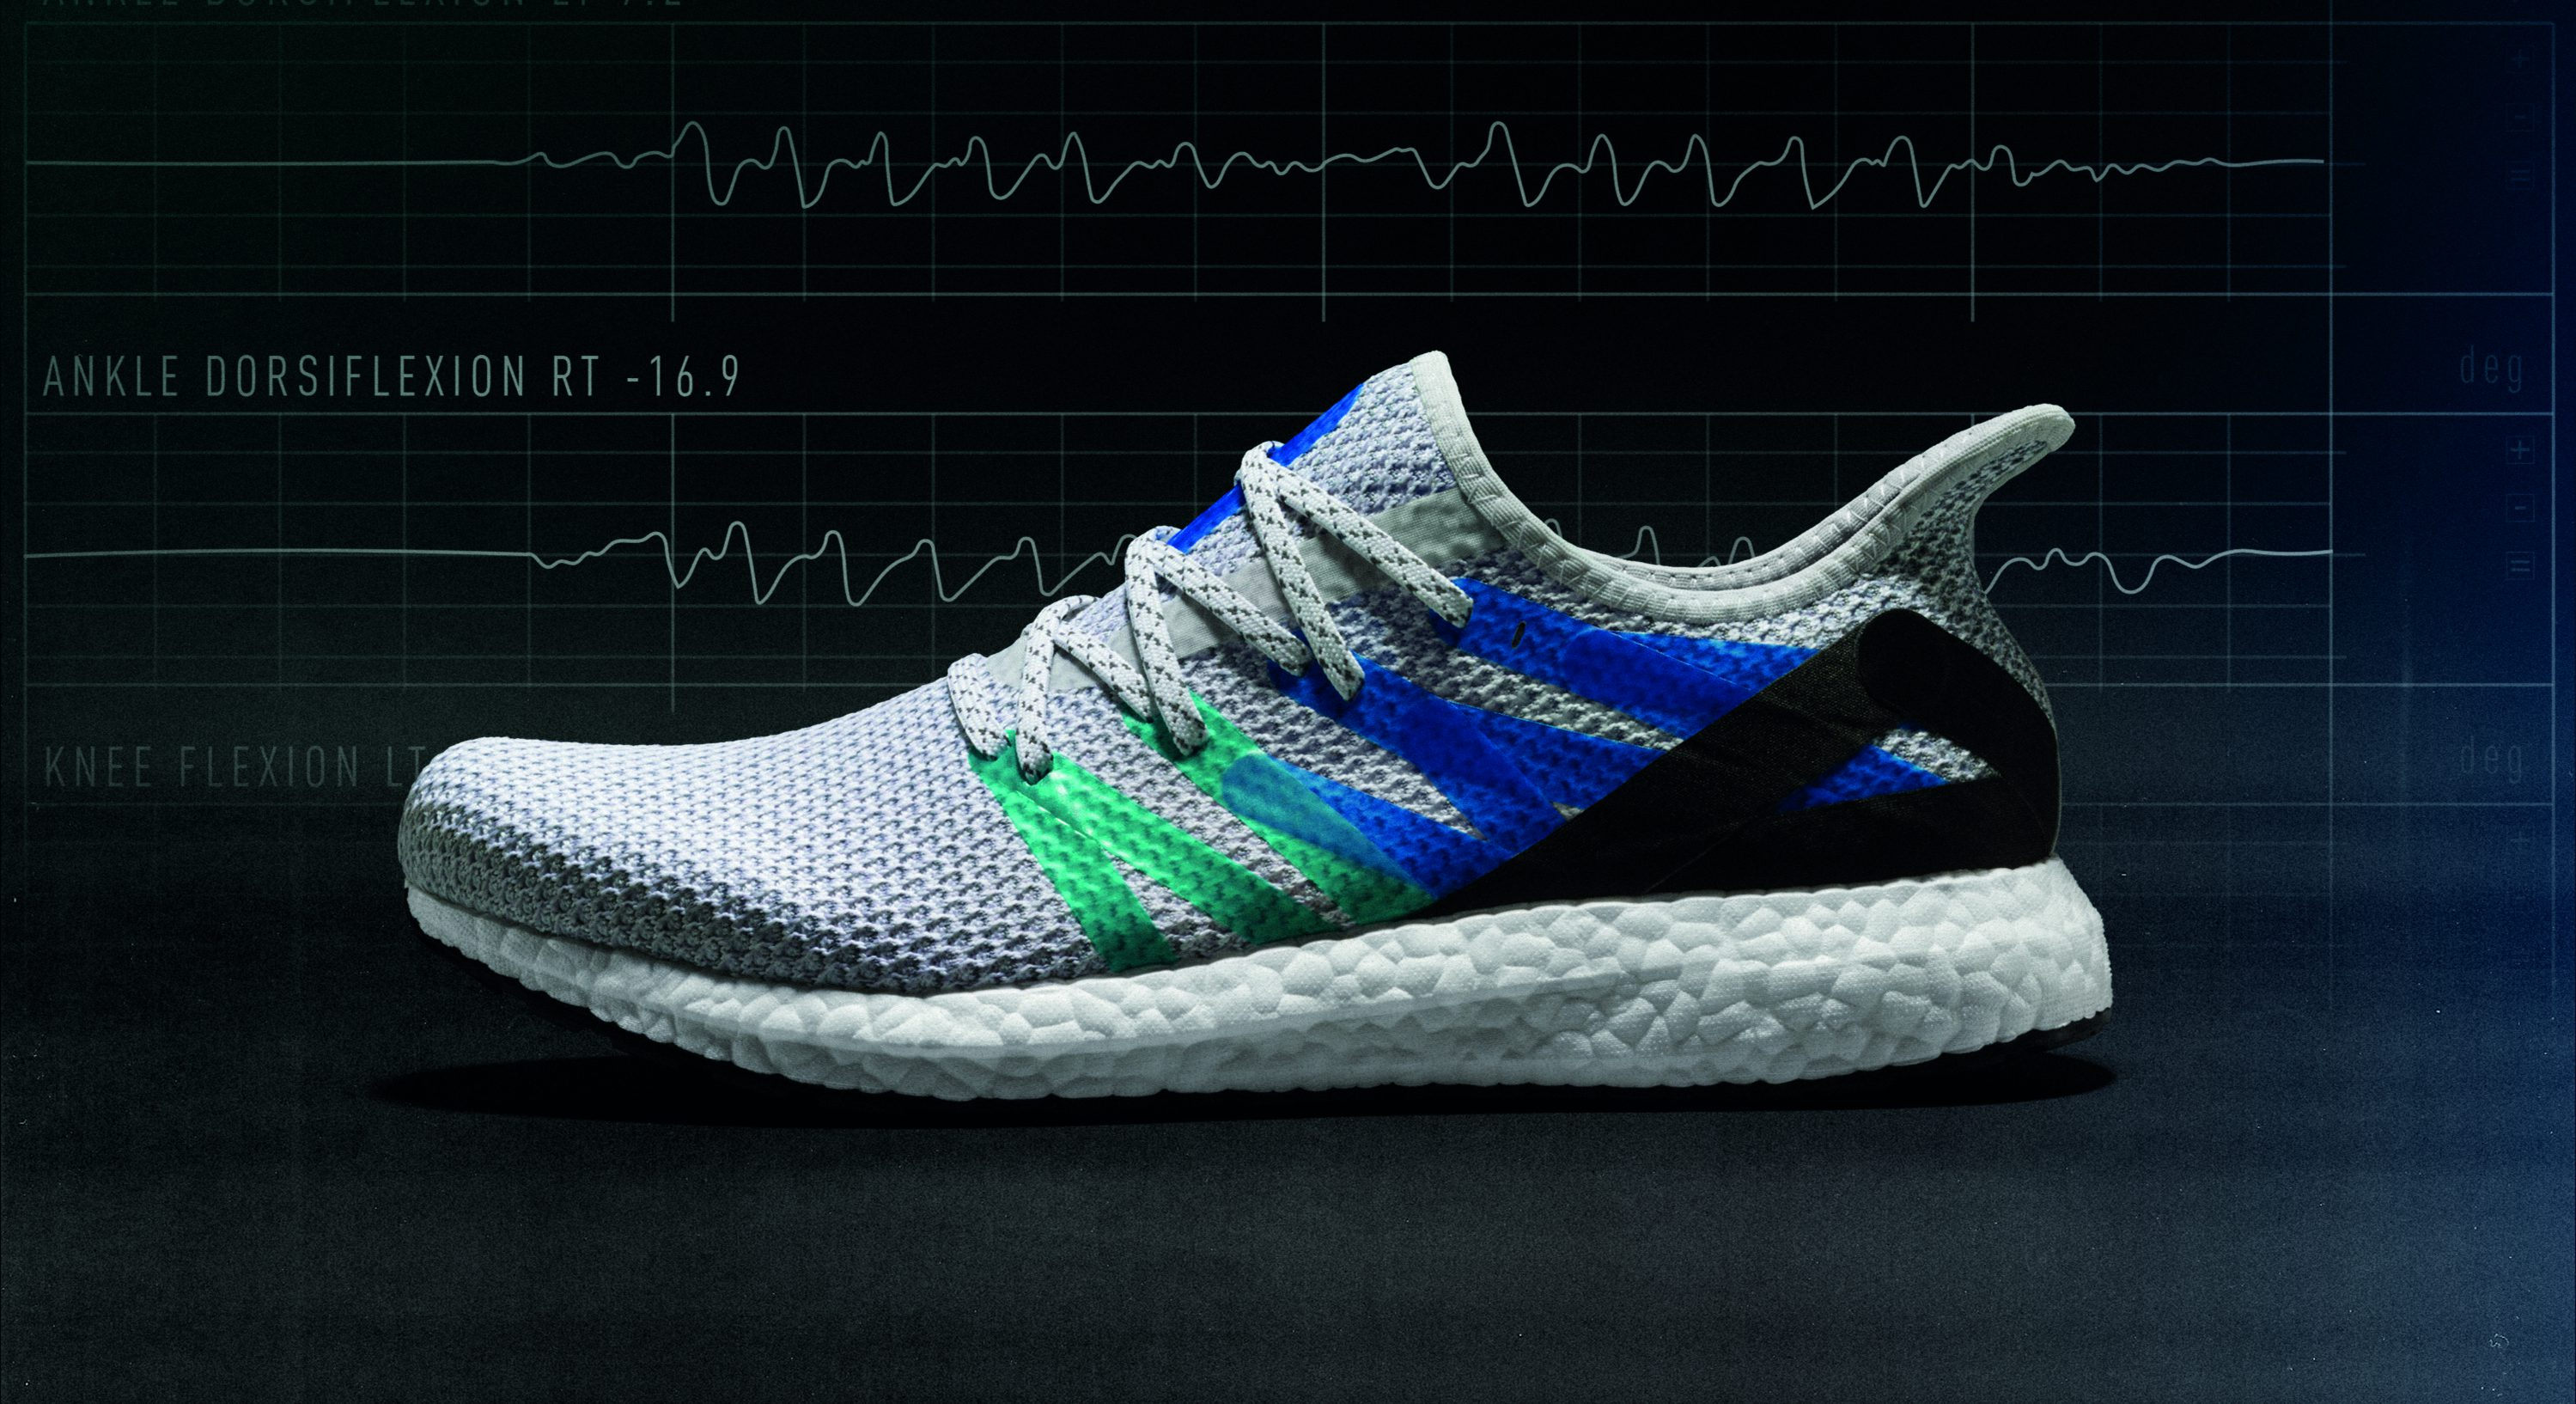 ca2fab5783e790 Adidas can now make specialized shoes for runners in different cities